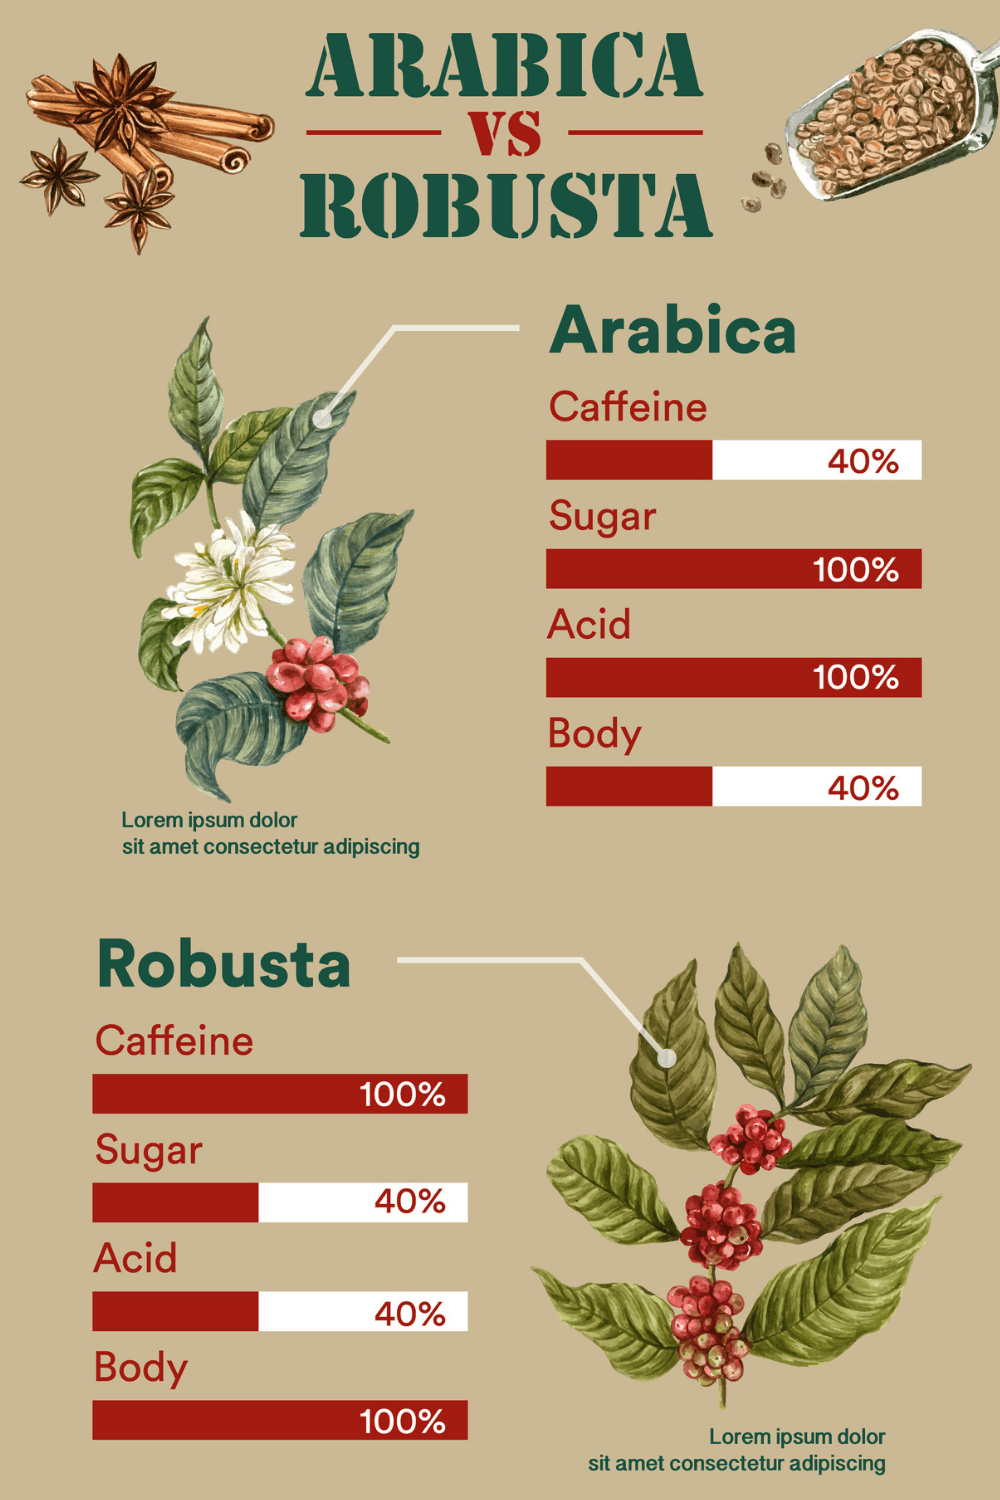 reference chart showing the differences of arabica vs robusta